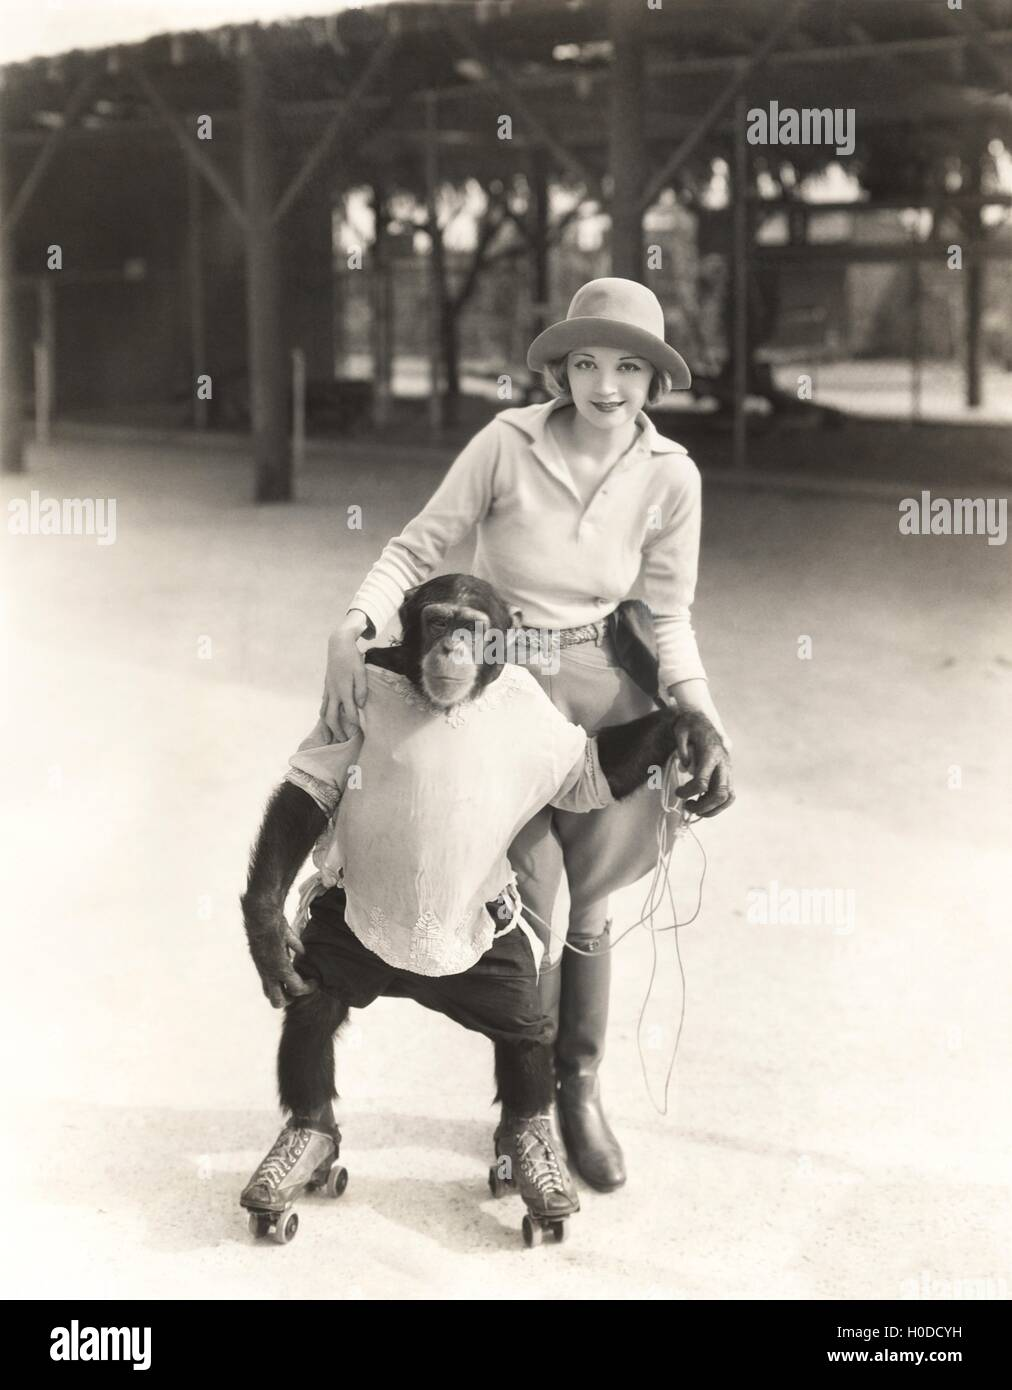 Woman with monkey on roller skates - Stock Image